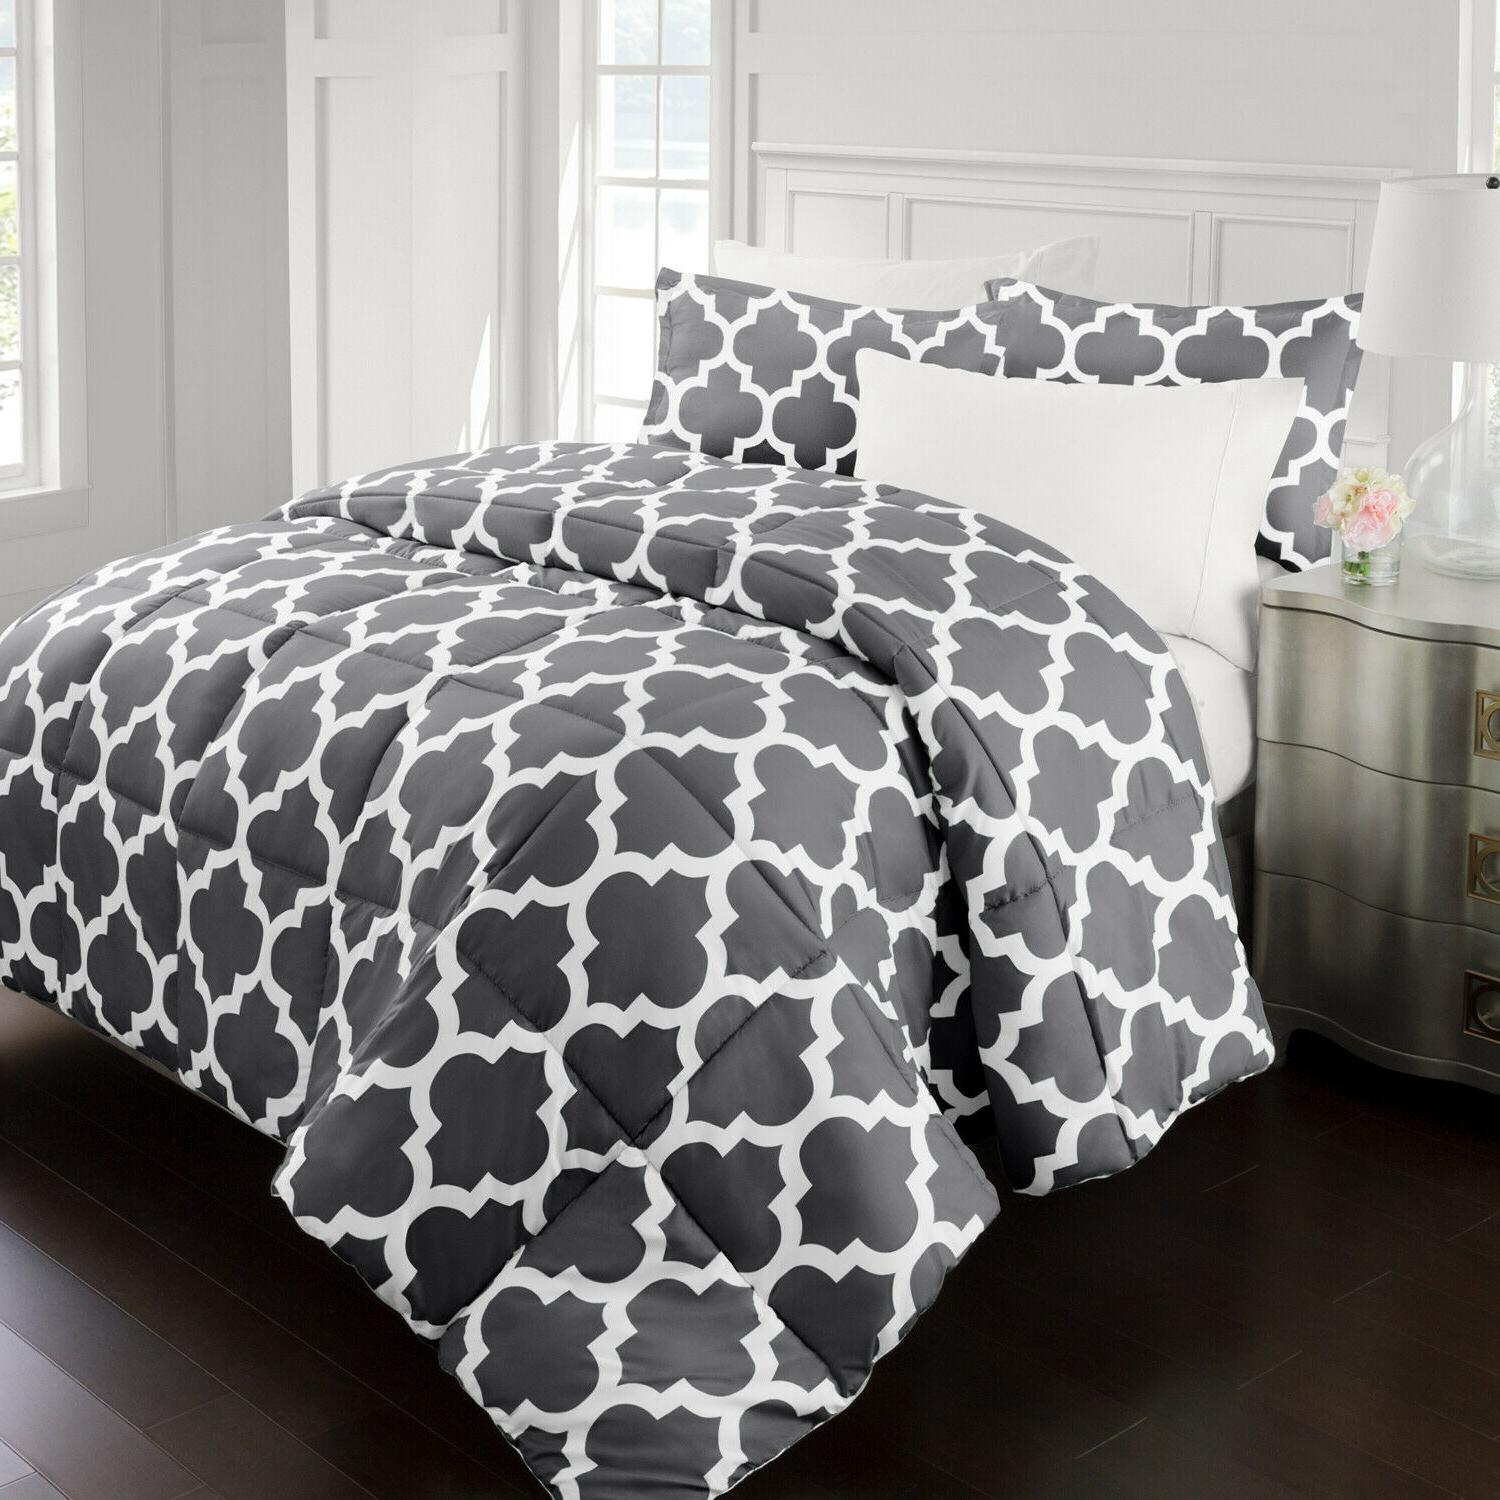 goose down alternative comforter with quatrefoil pattern